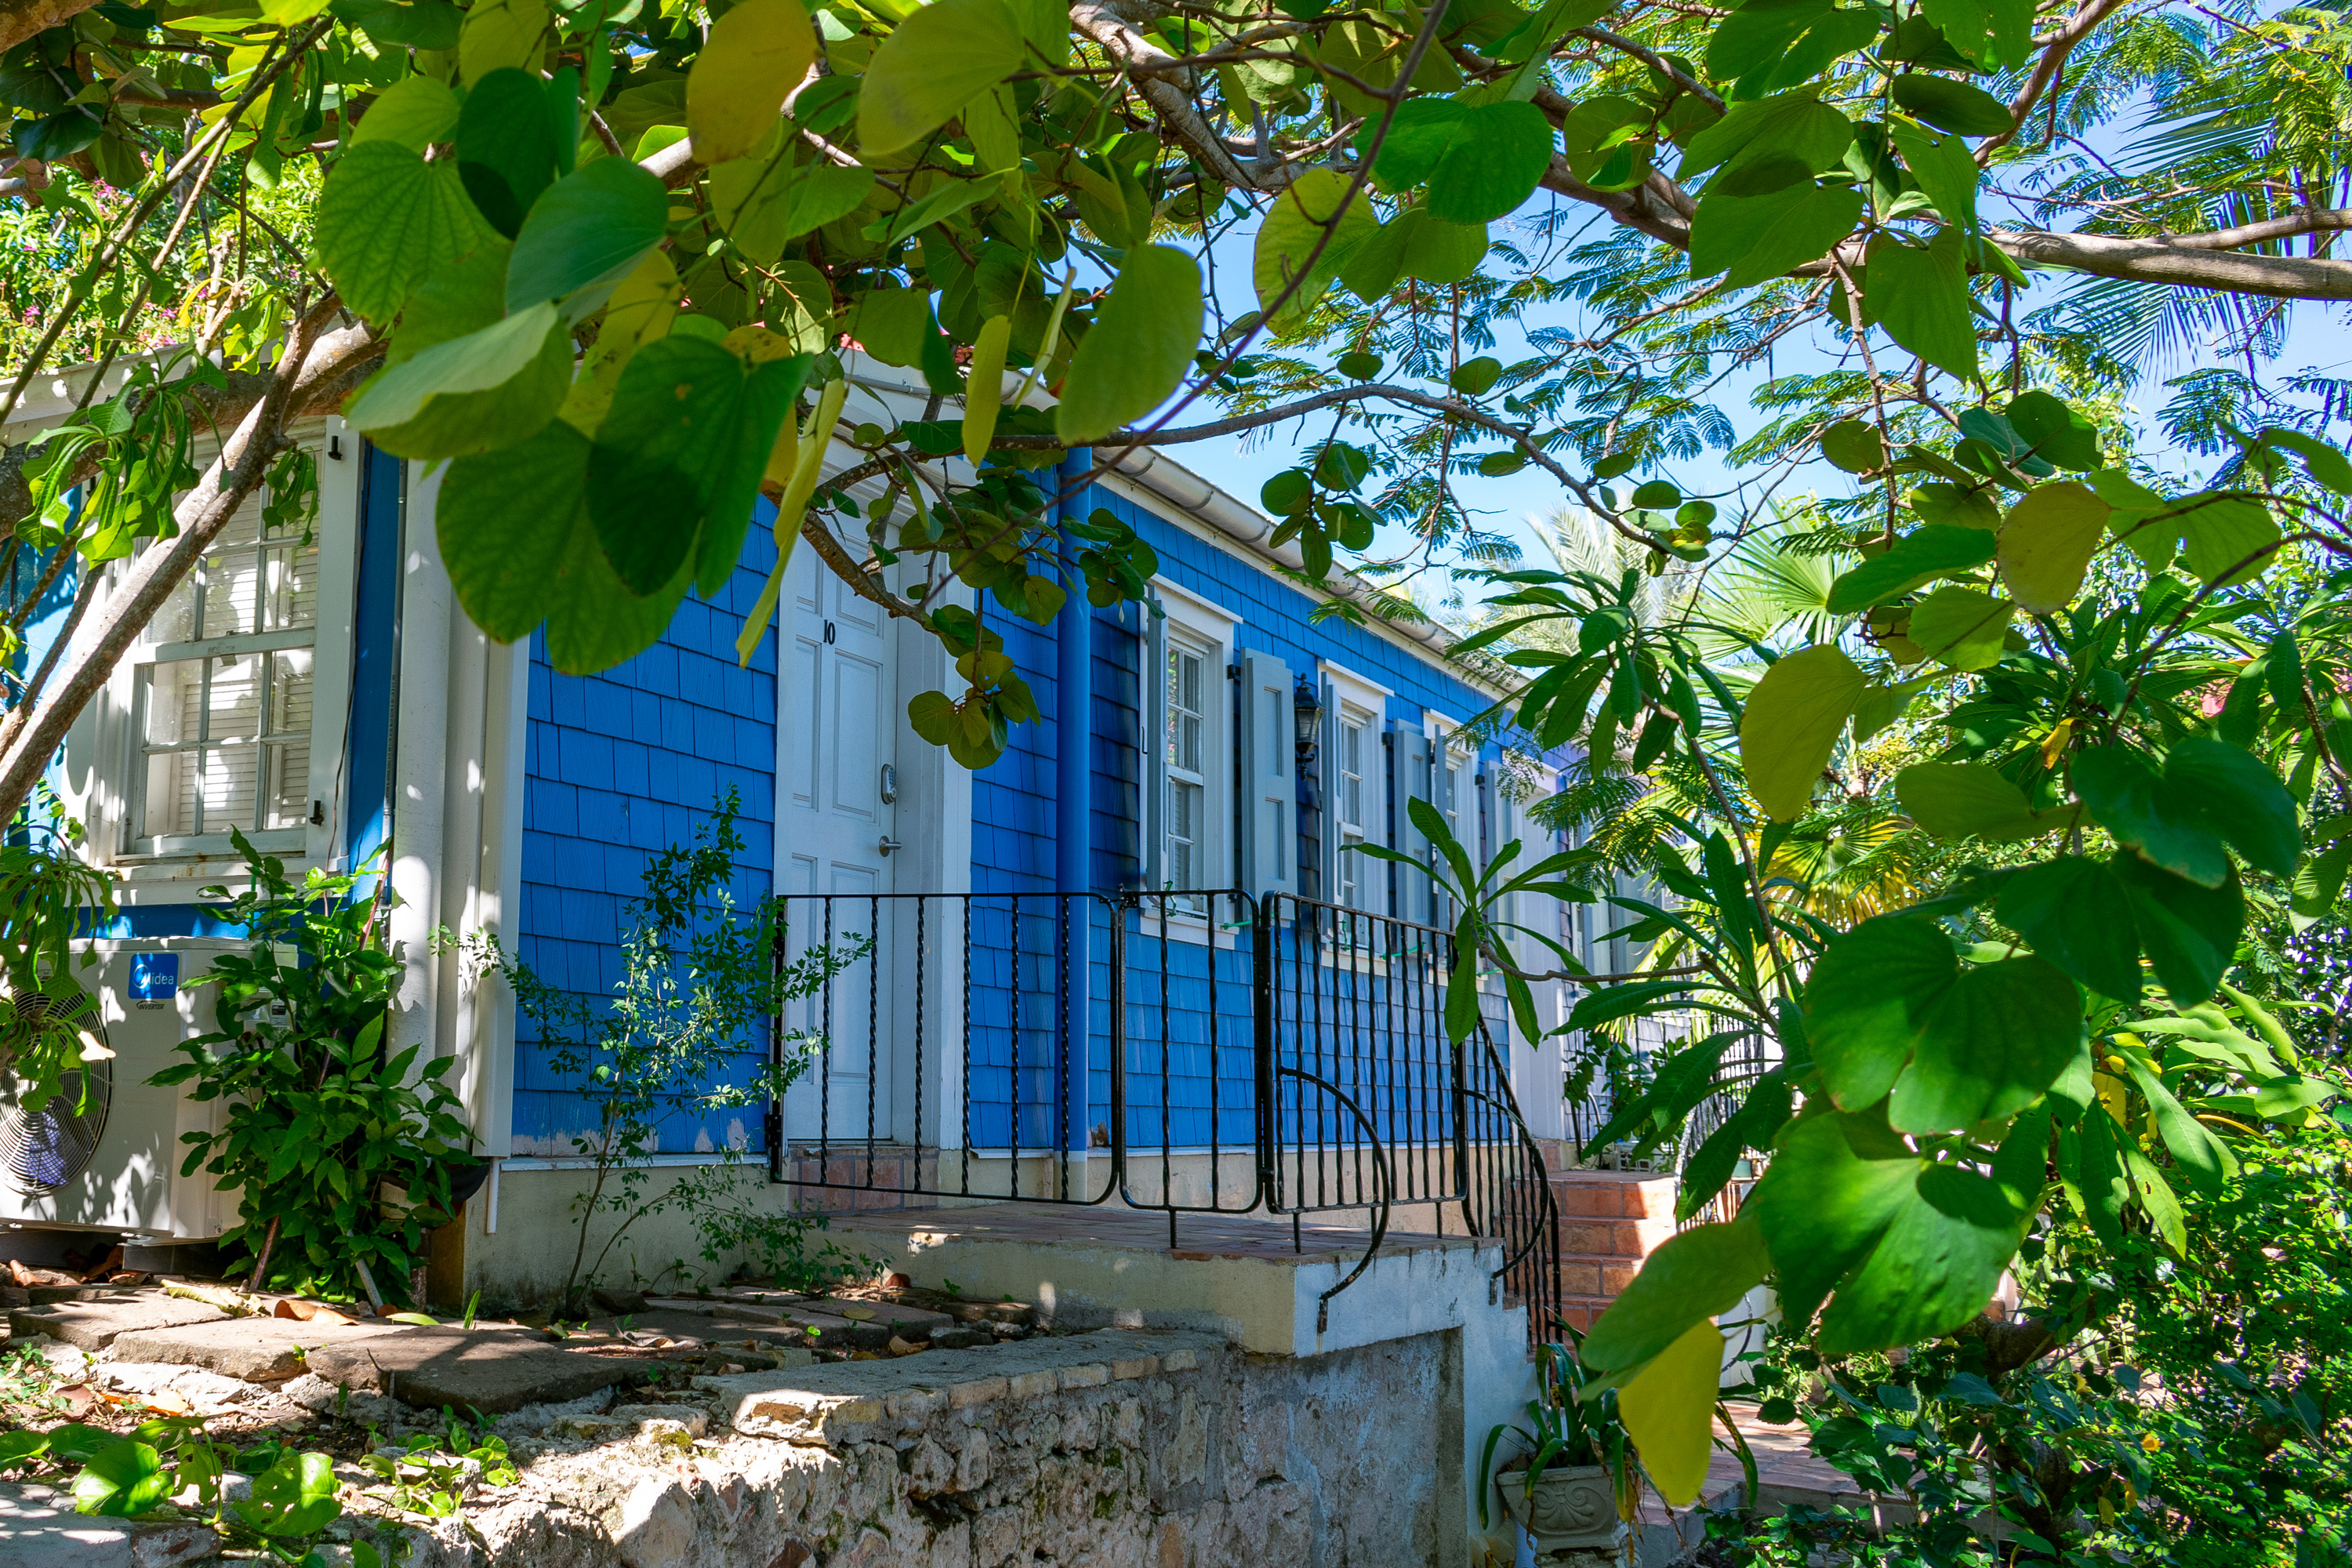 For something a little special, stay in one of the cottages on property.